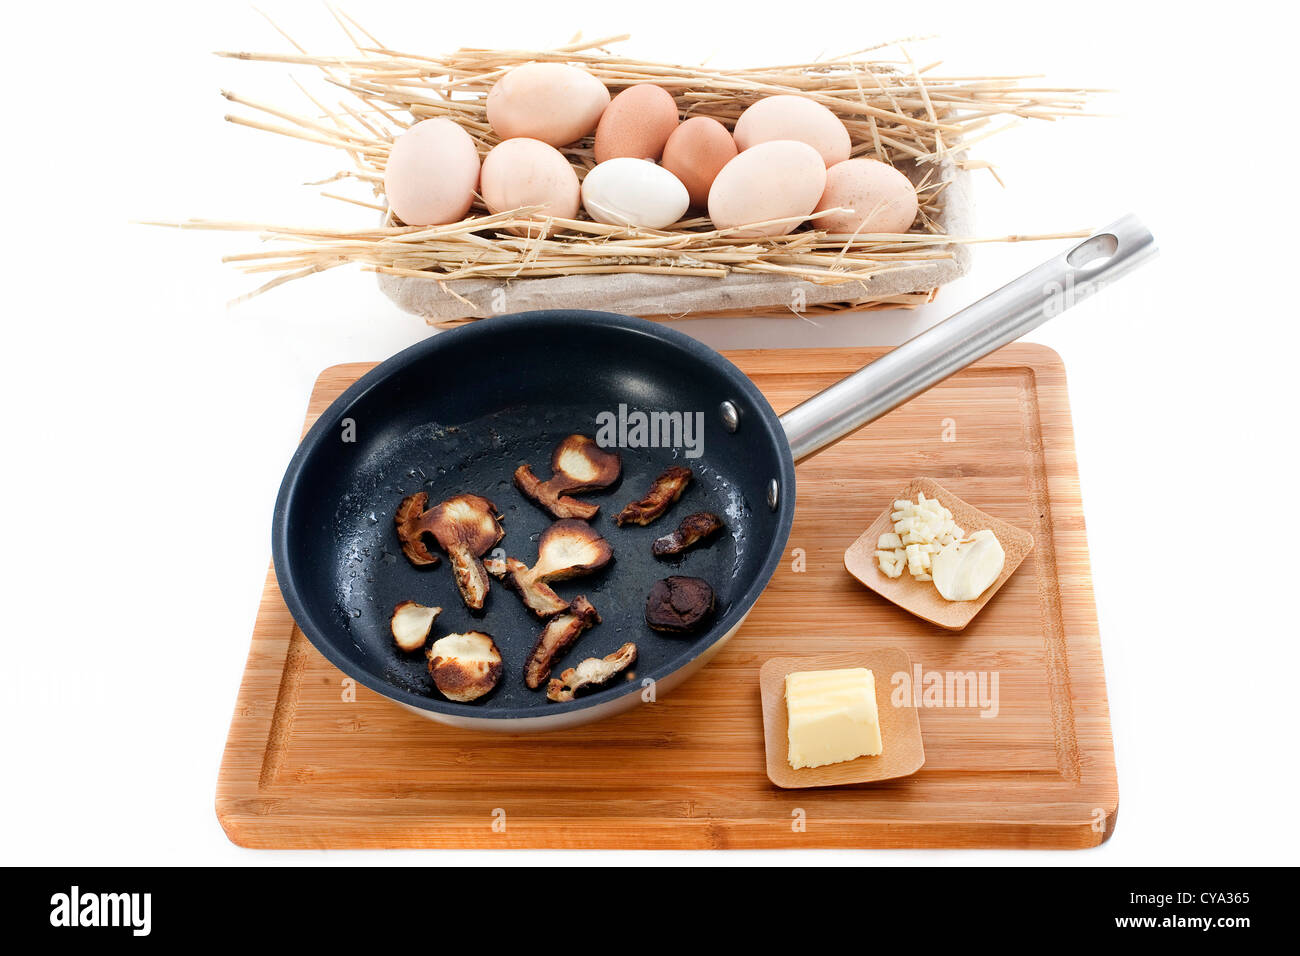 ingredients for mushroom omelette in front of white background - Stock Image